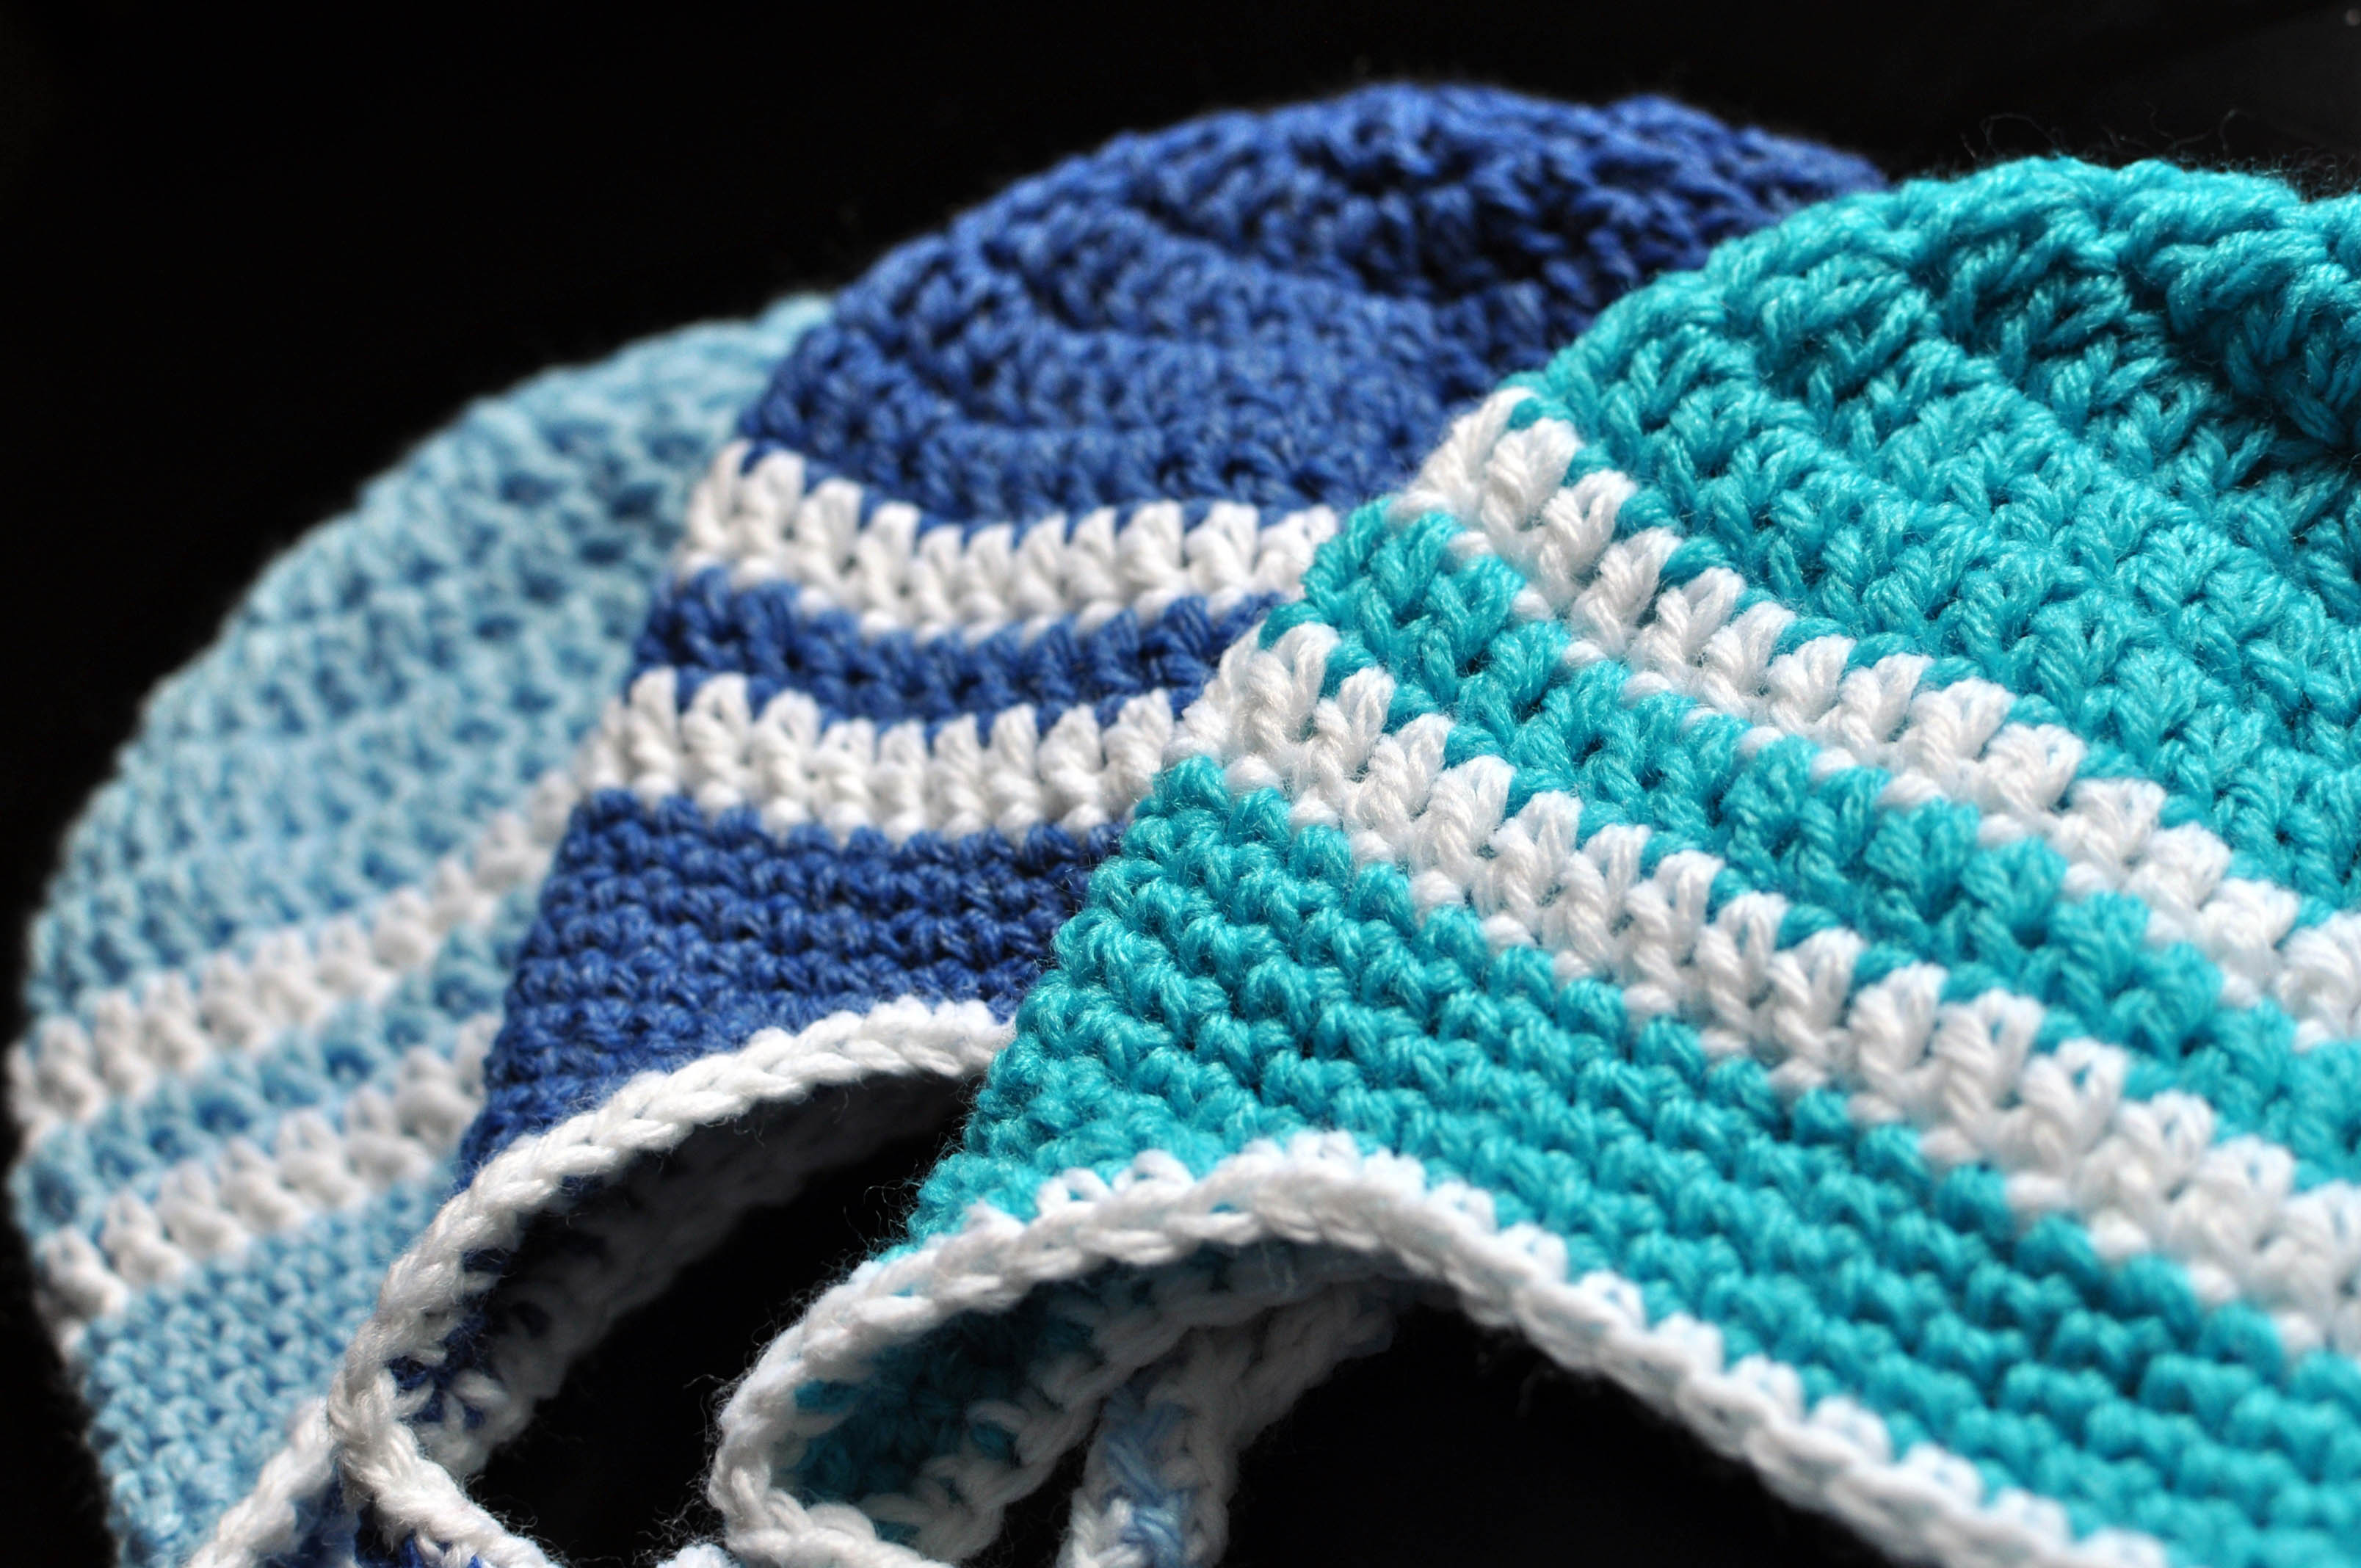 Free Crochet Pattern Toddler Hat Ear Flaps : Free Crochet Pattern: Striped Earflap Hat Classy Crochet